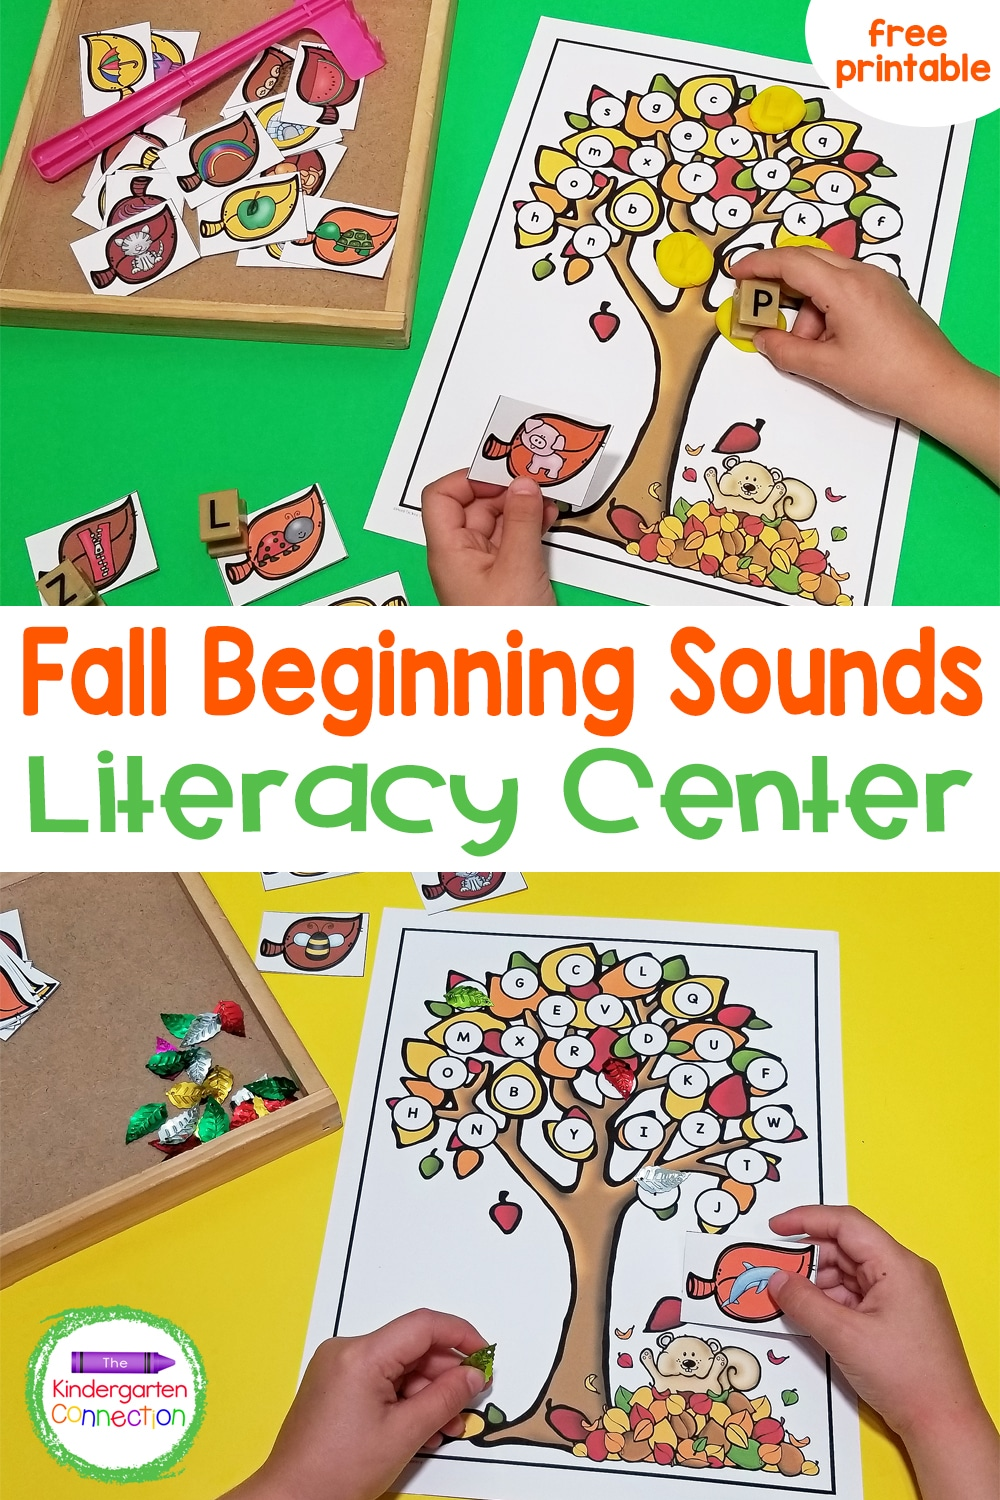 Grab this free Fall Leaves Beginning Sounds Activity for Kindergarten small groups and literacy centers this season! Your kids will love it!